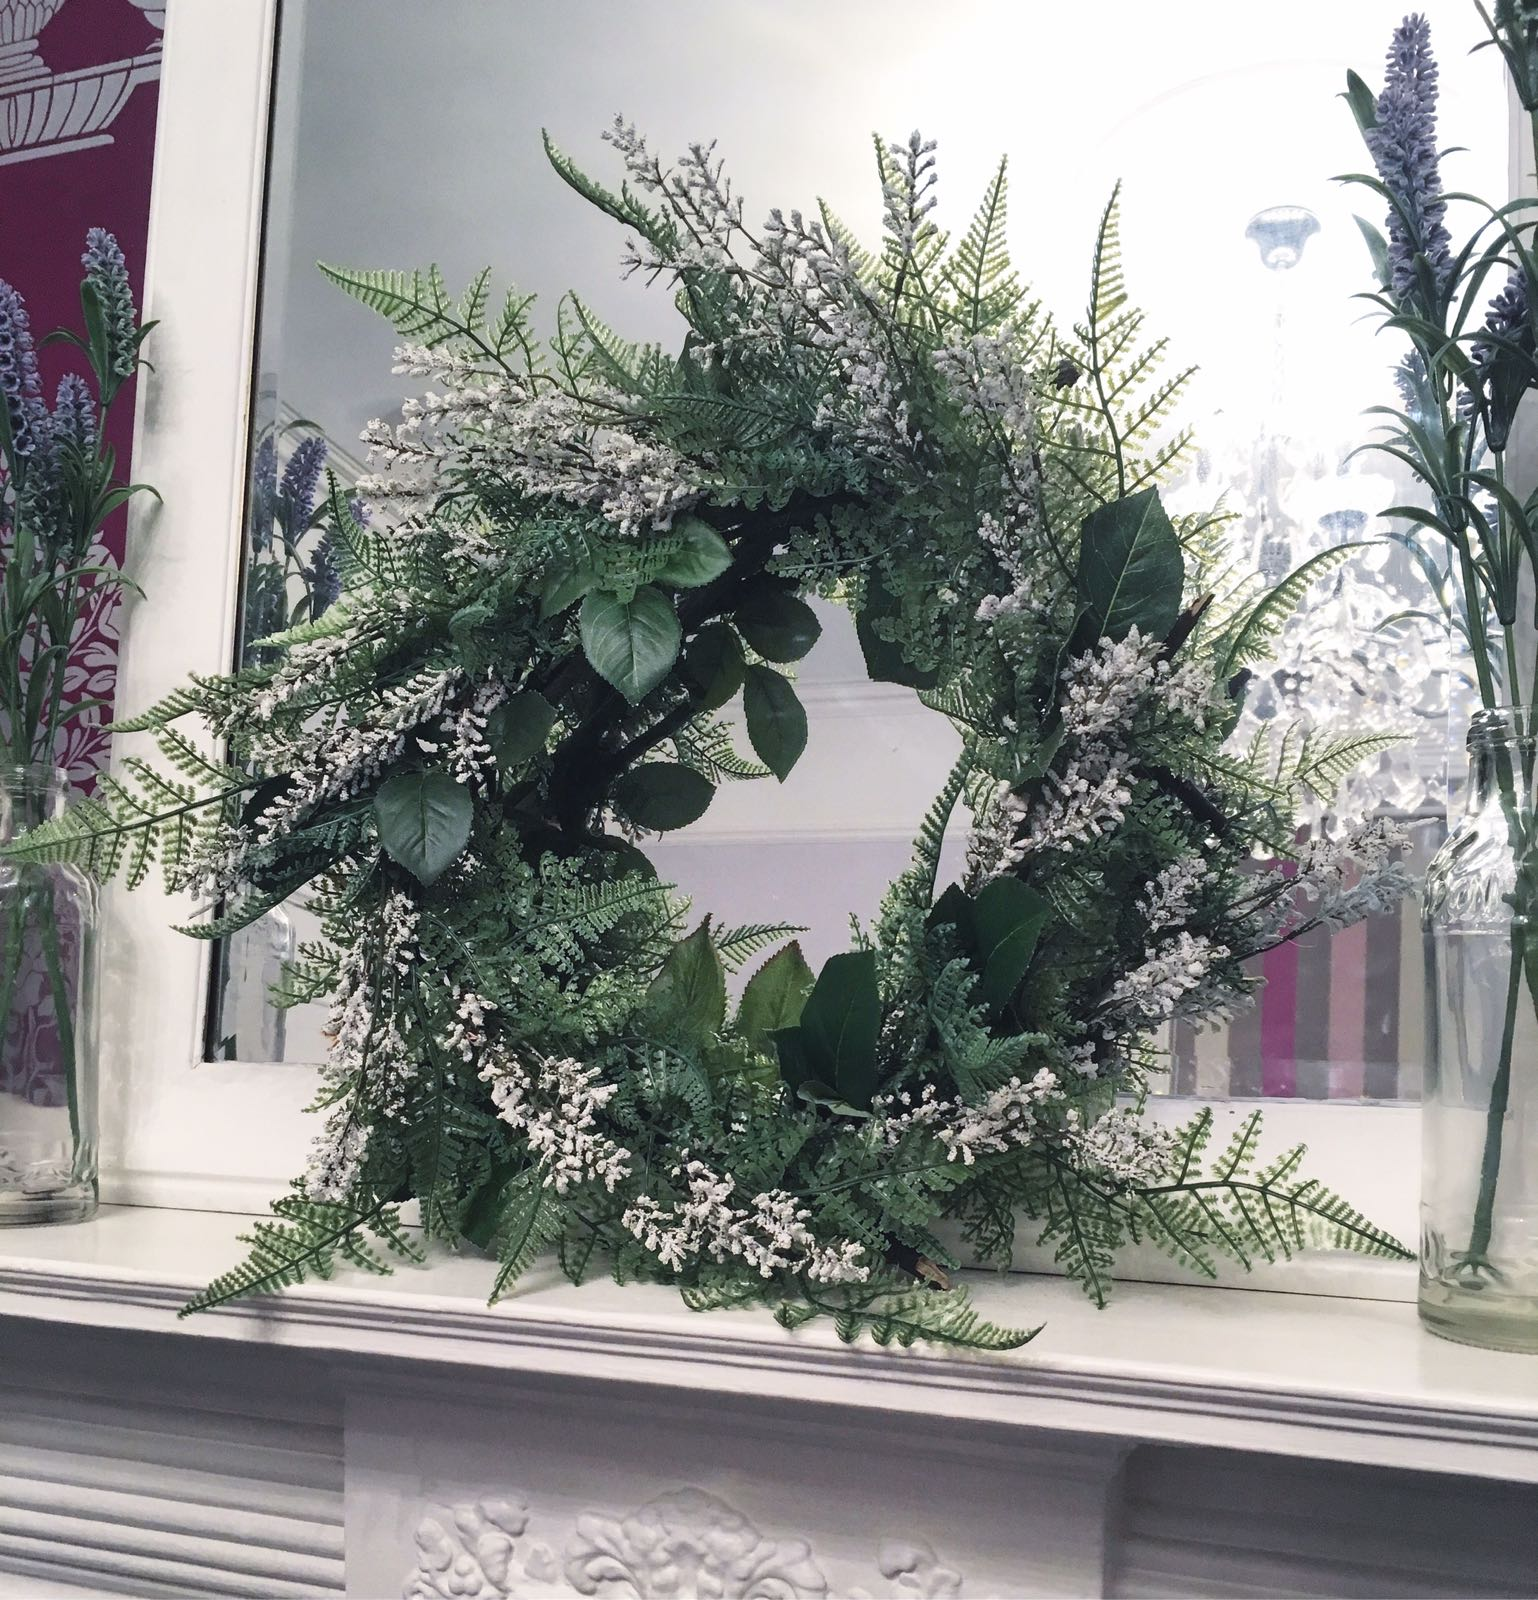 Step 6: - The additional of some subtle white foliage makes this wreath a real beauty. You can add so many bits to a festive wreath to make it totally unique to you!